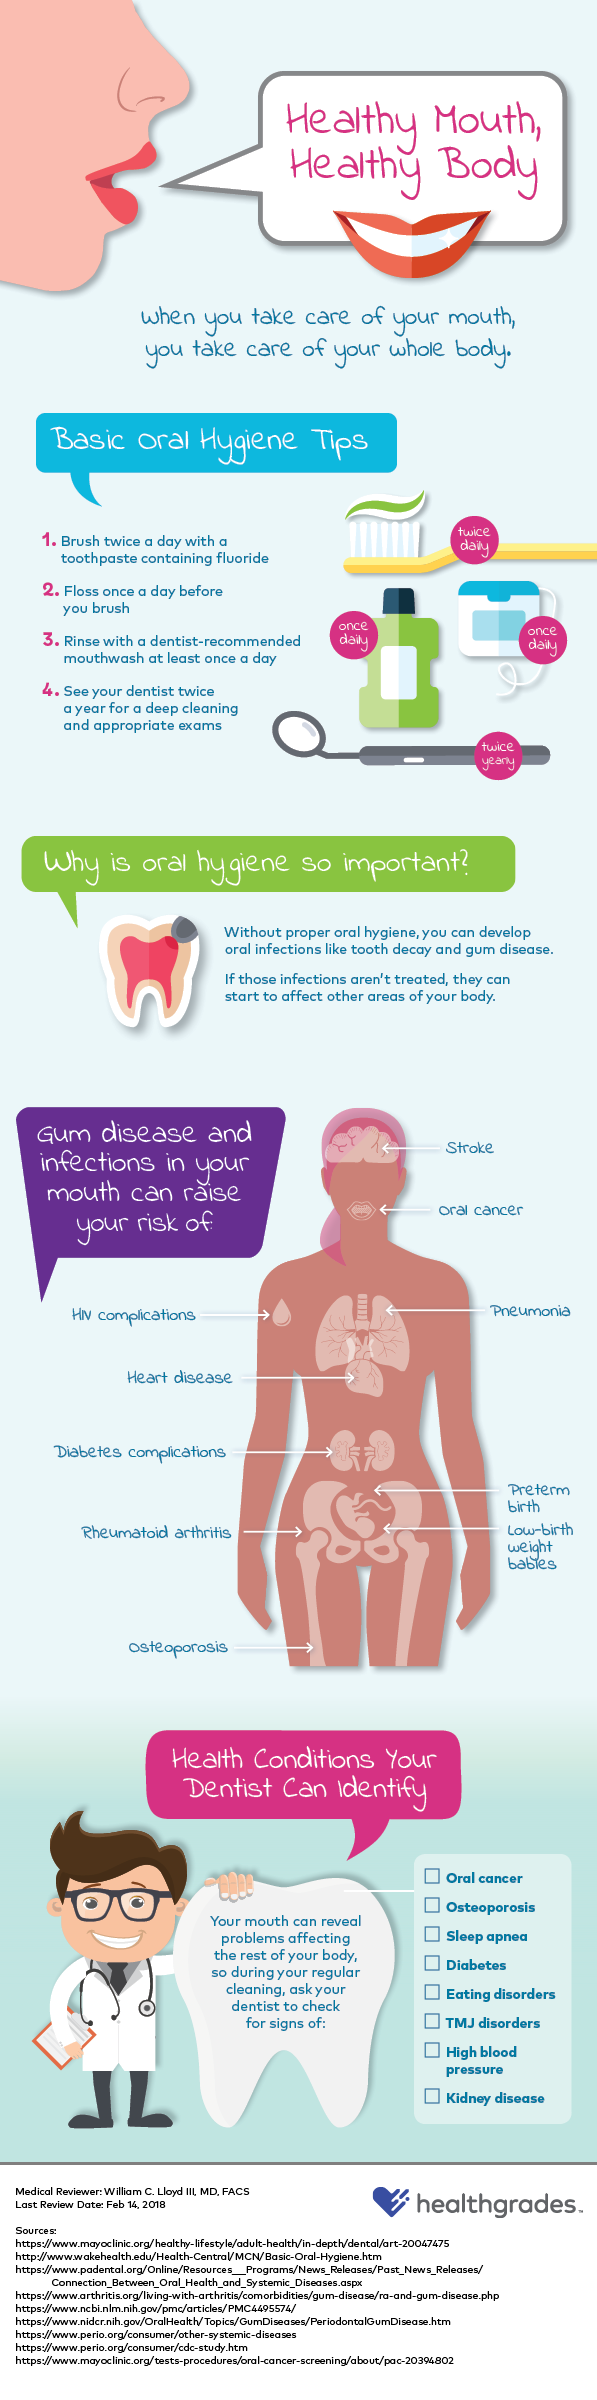 Healthy Mouth, Healthy Body infographic